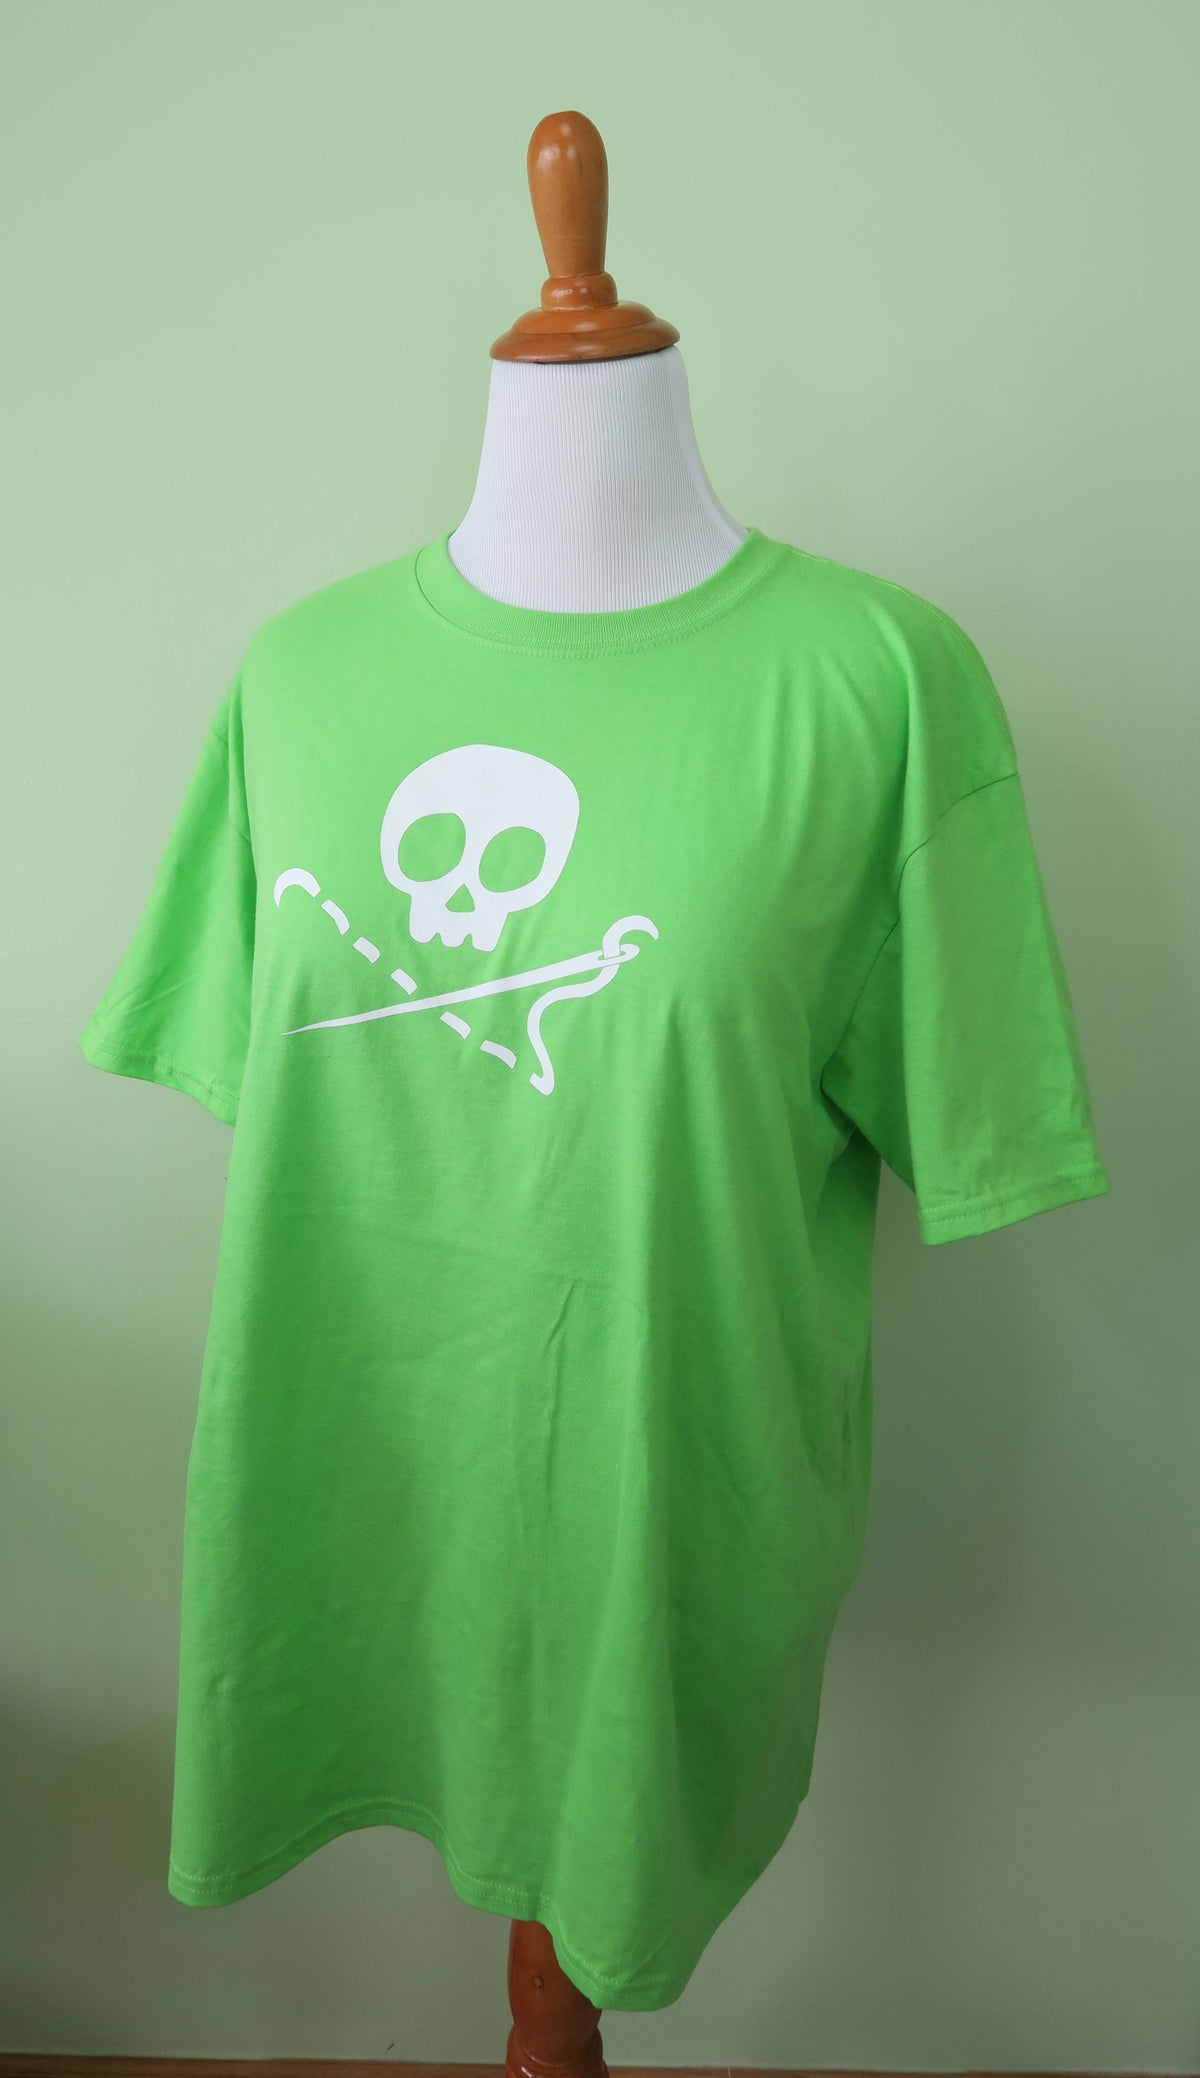 Image of PREORDER - Lime Green Sewing Skull Crew Neck Shirt - Shipping May 31